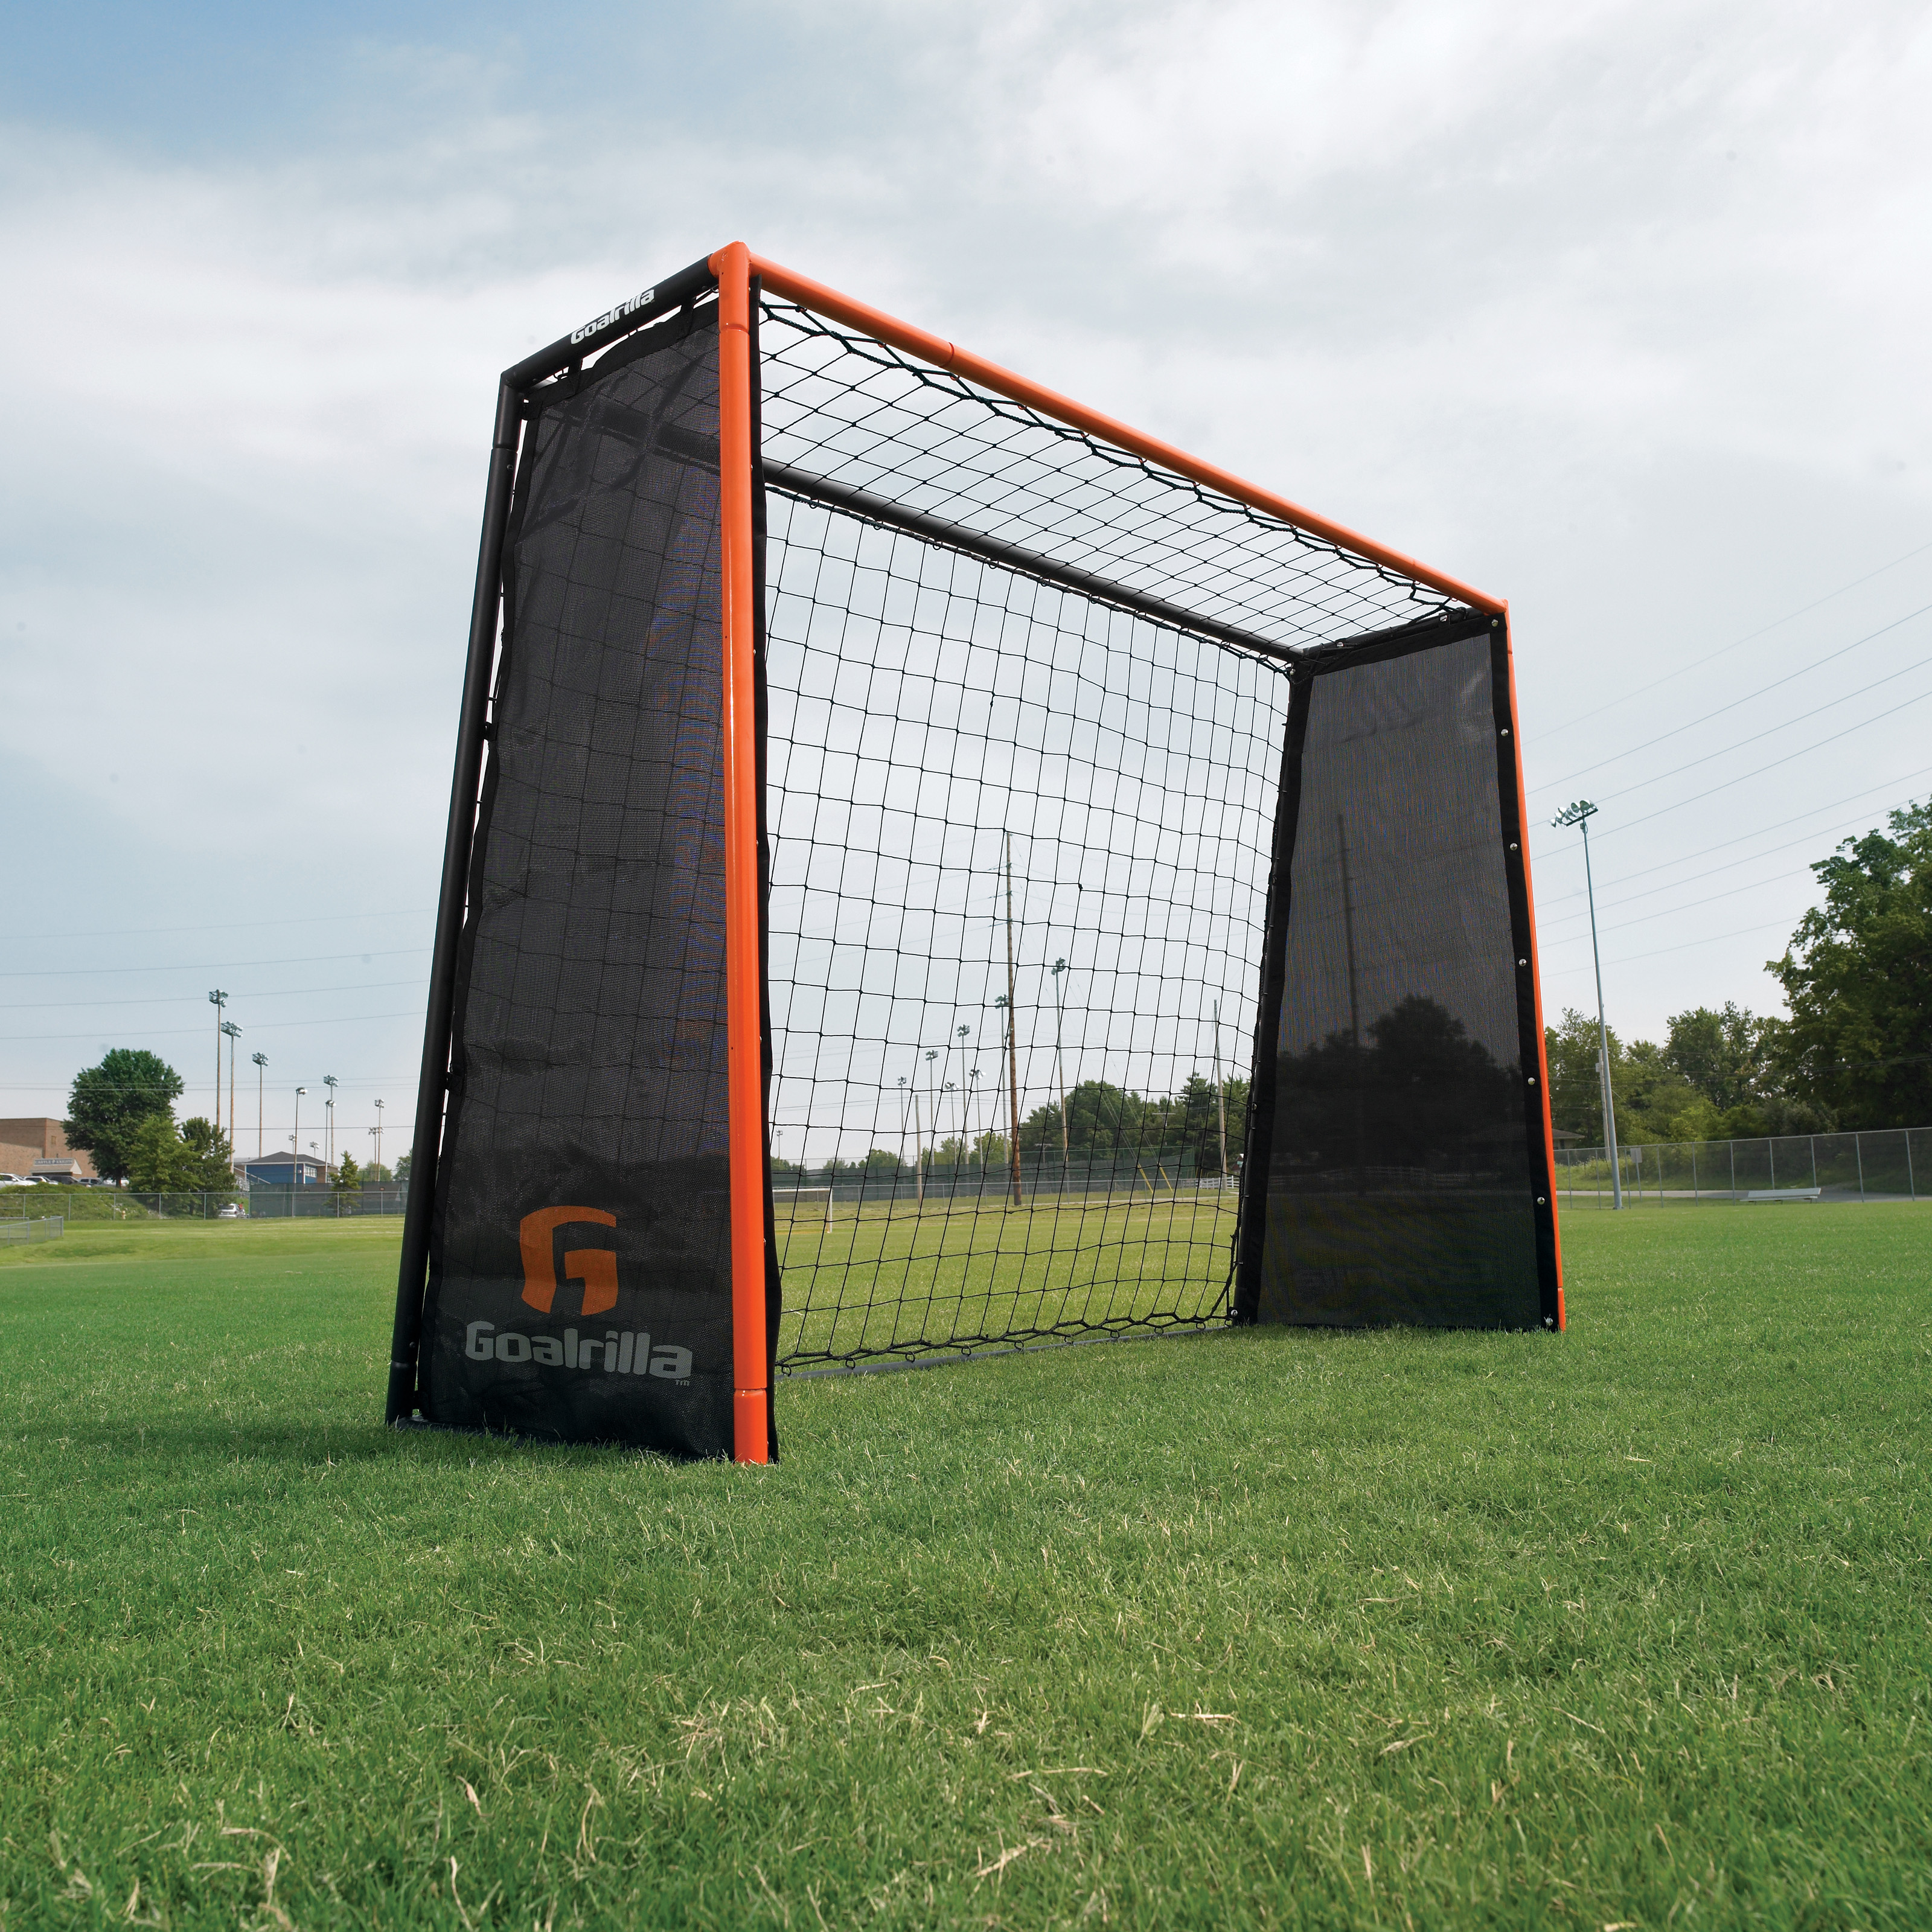 Soccer Backyard Nets : Backyard Soccer Goal Net And Rebounder Image 8 Pictures to pin on